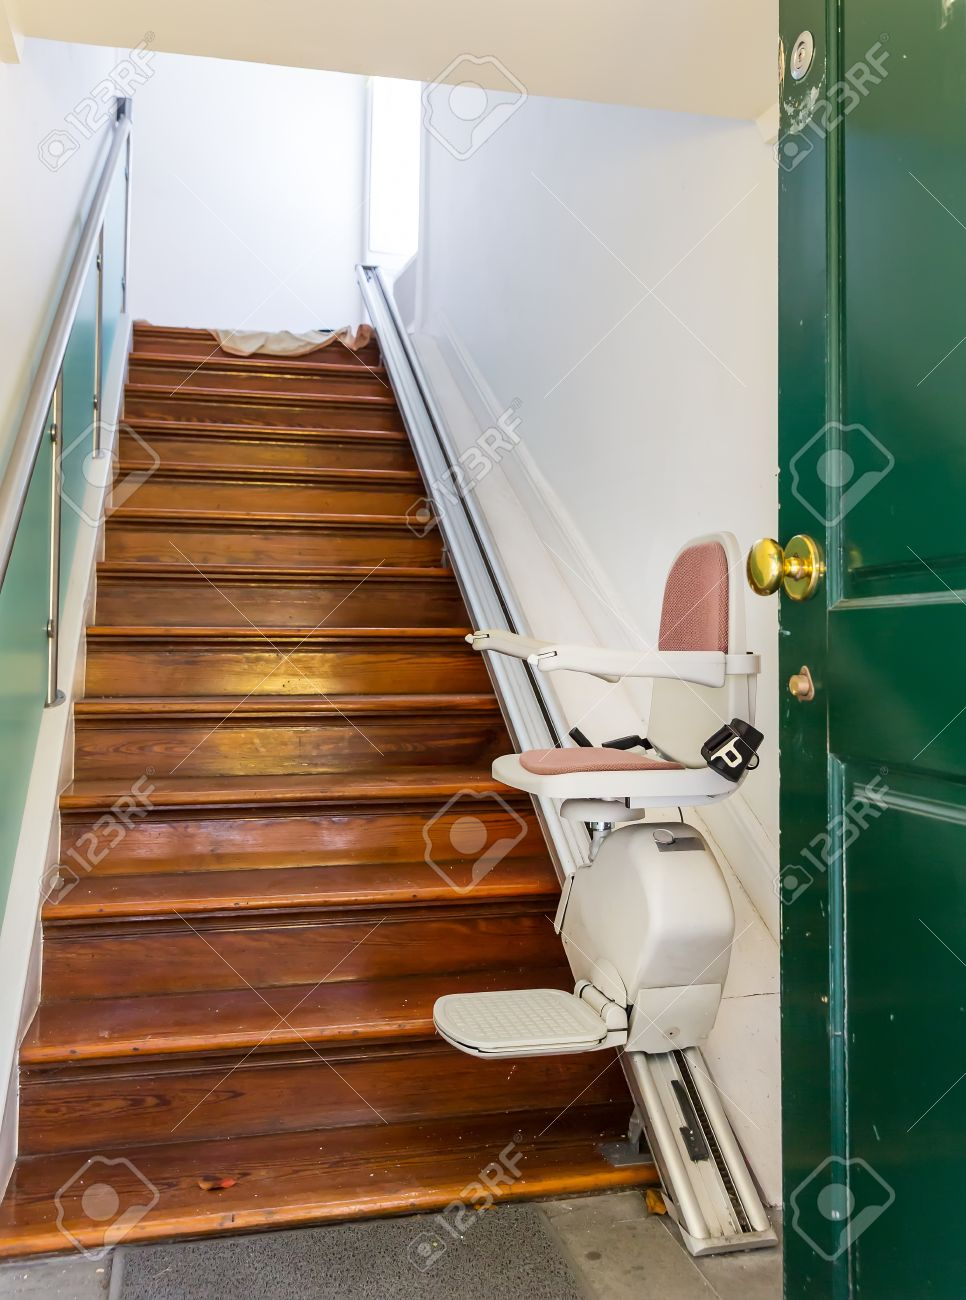 Stairlifts in Standish